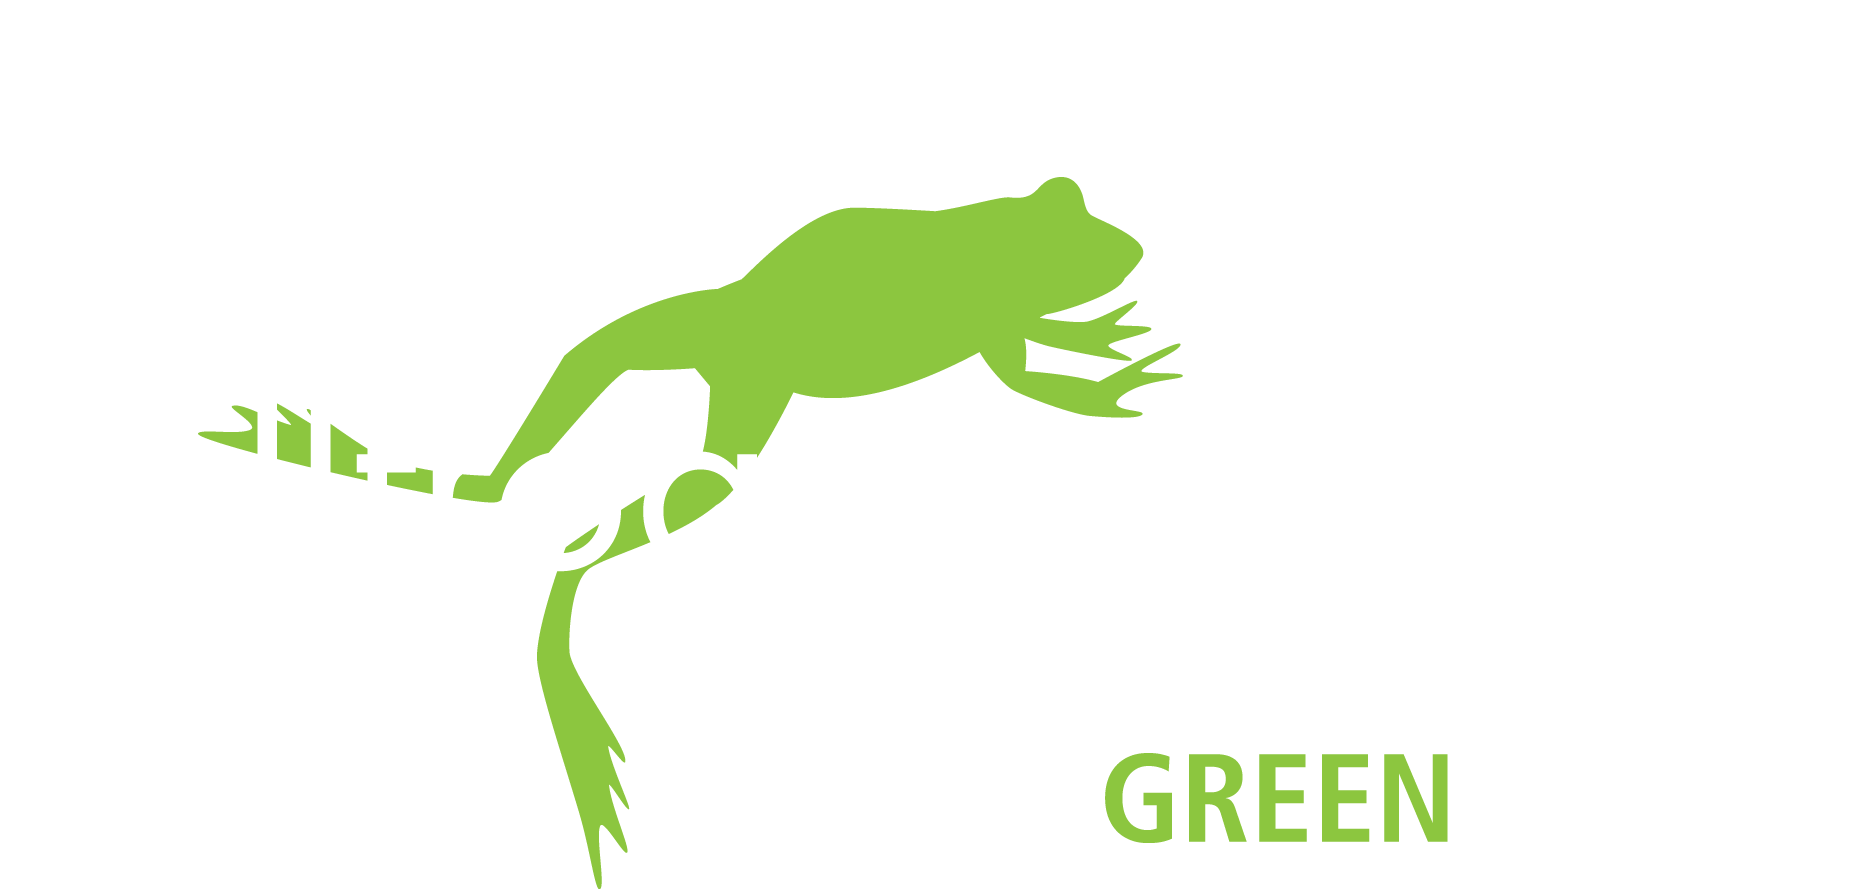 Brew Donkey Tours Bullfrog Powered